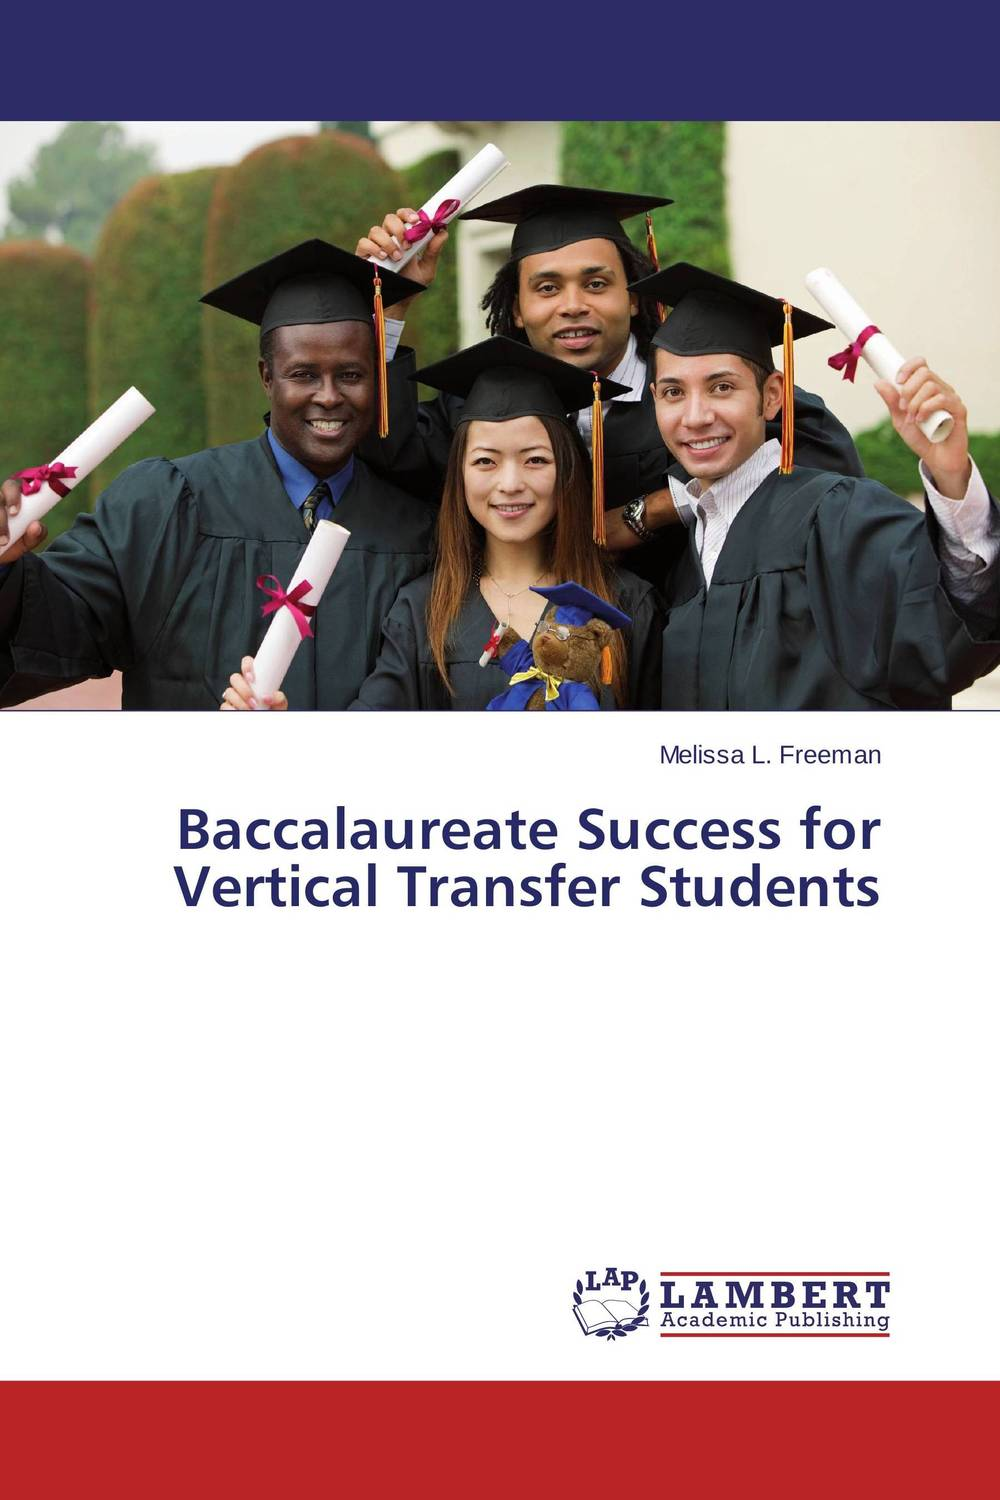 Baccalaureate Success for Vertical Transfer Students